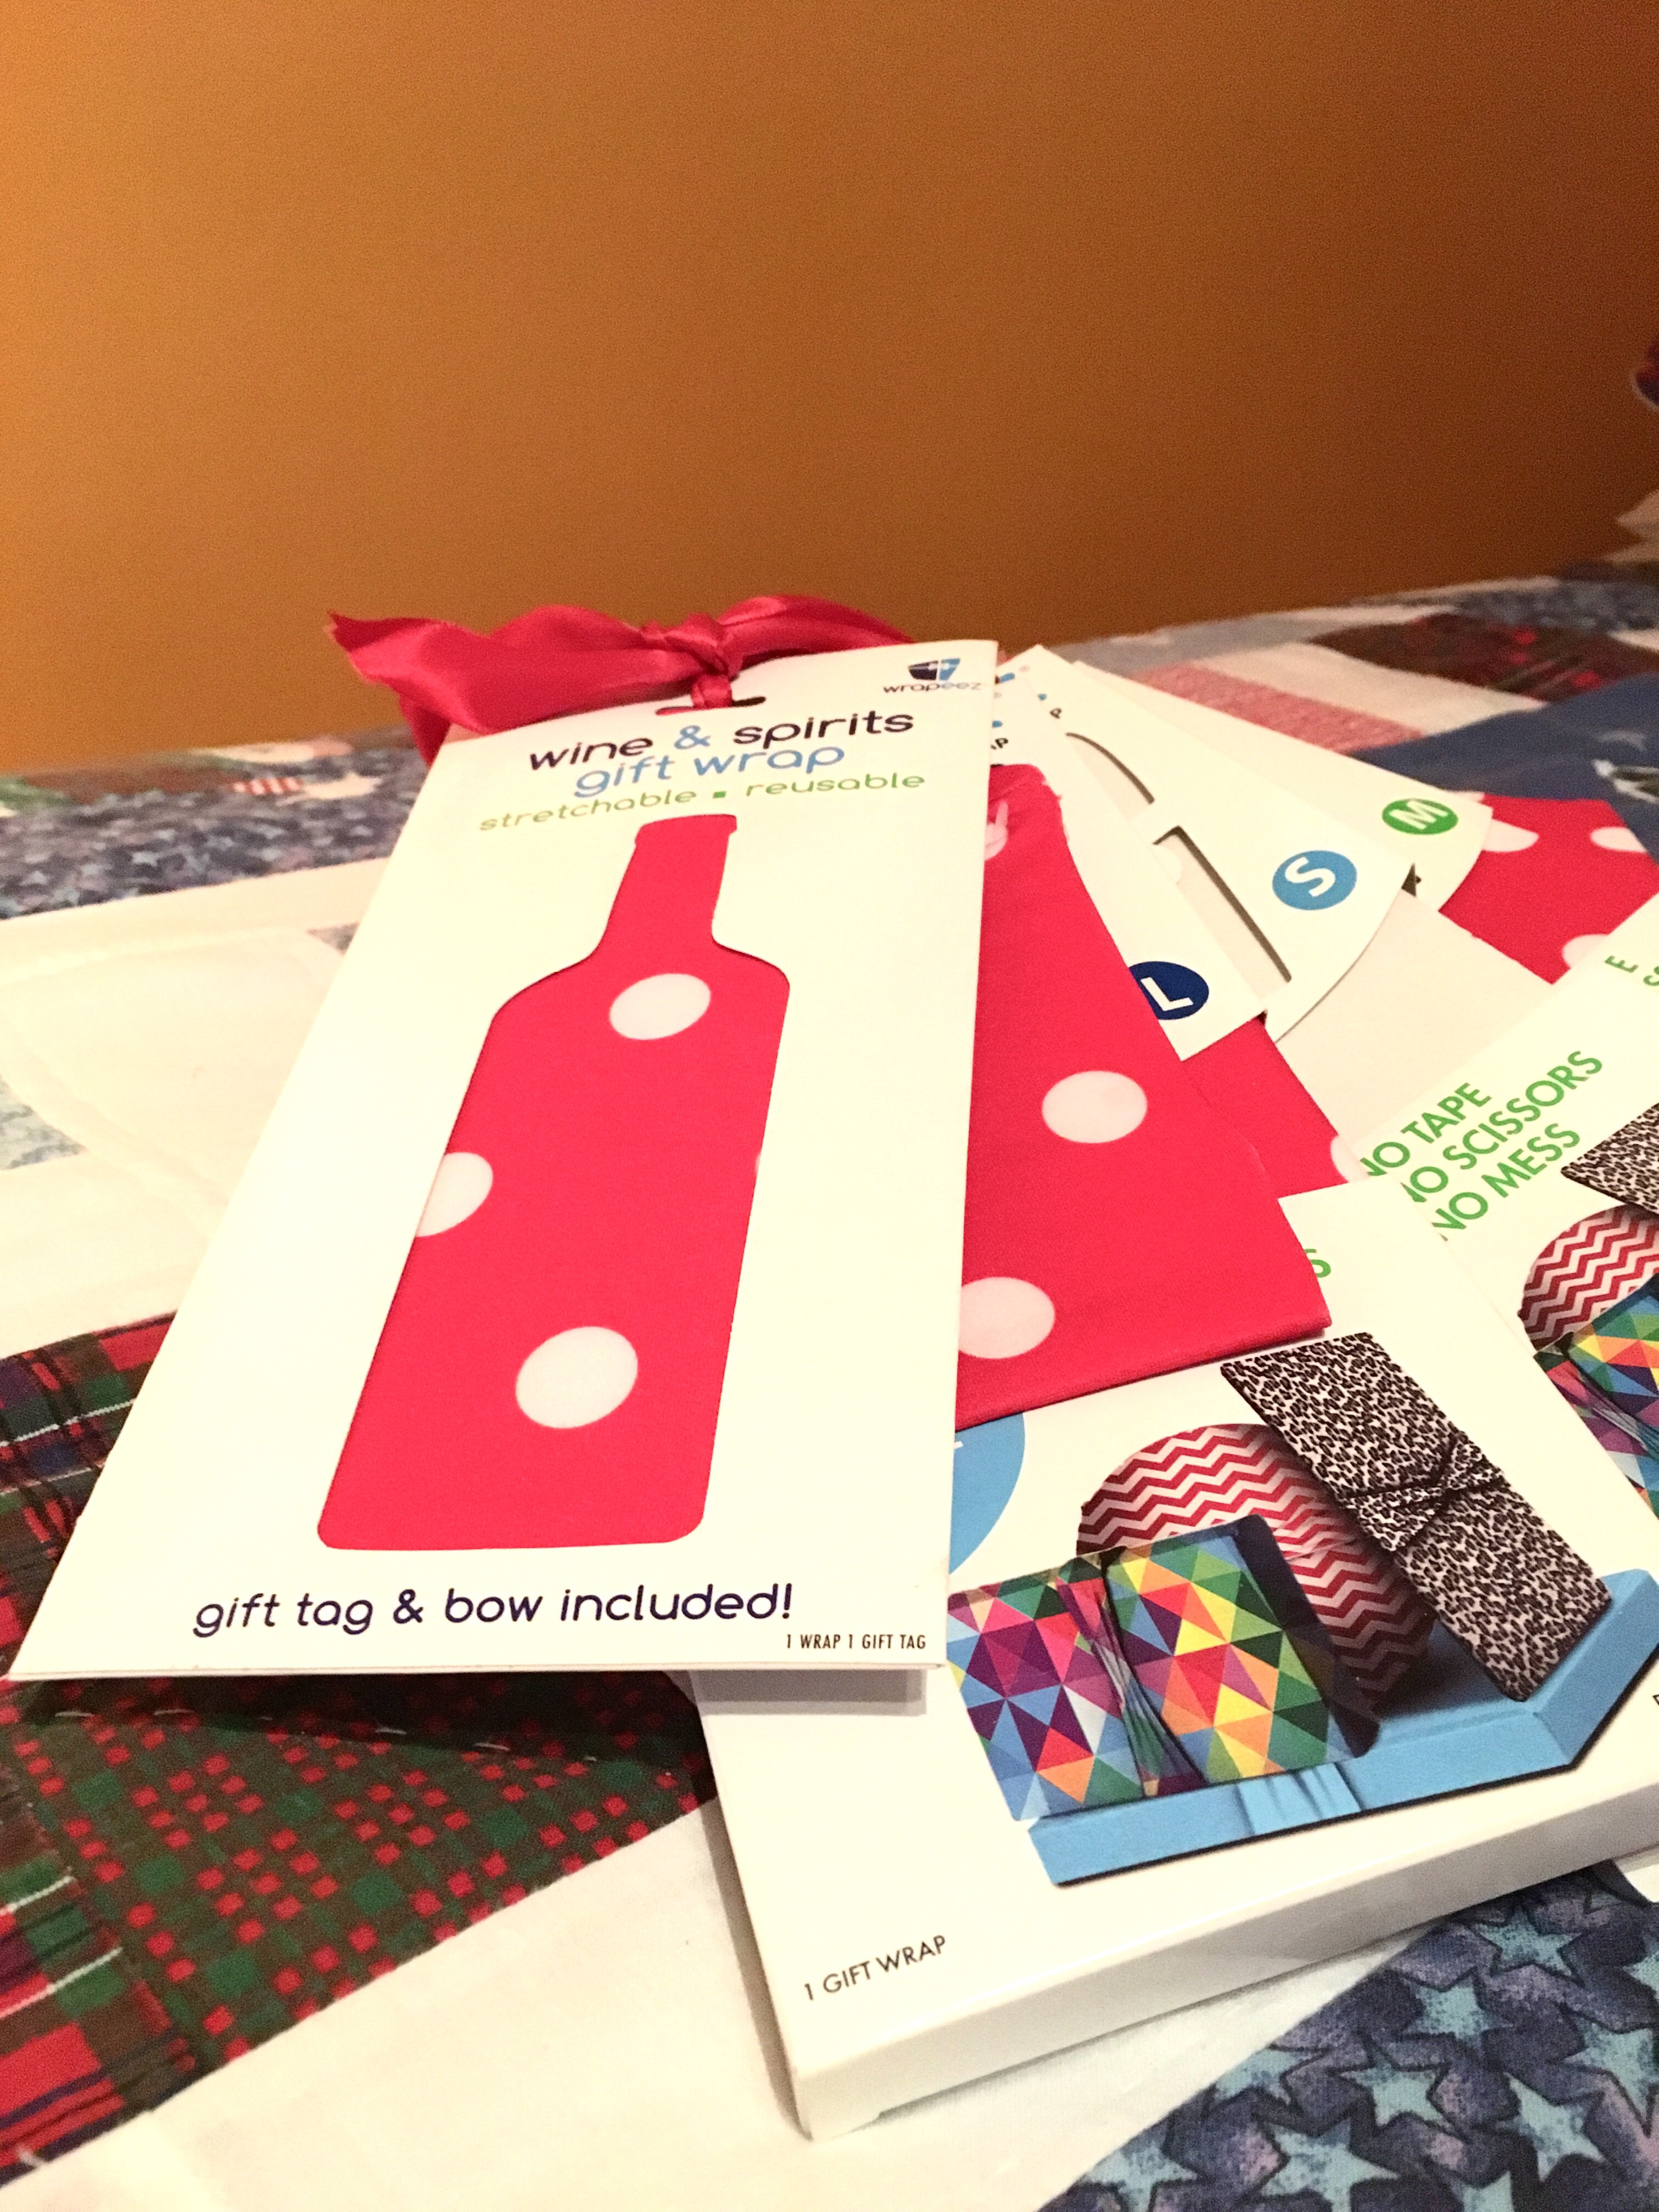 Wrapeez, a reusable, eco-friendly gift wrapping